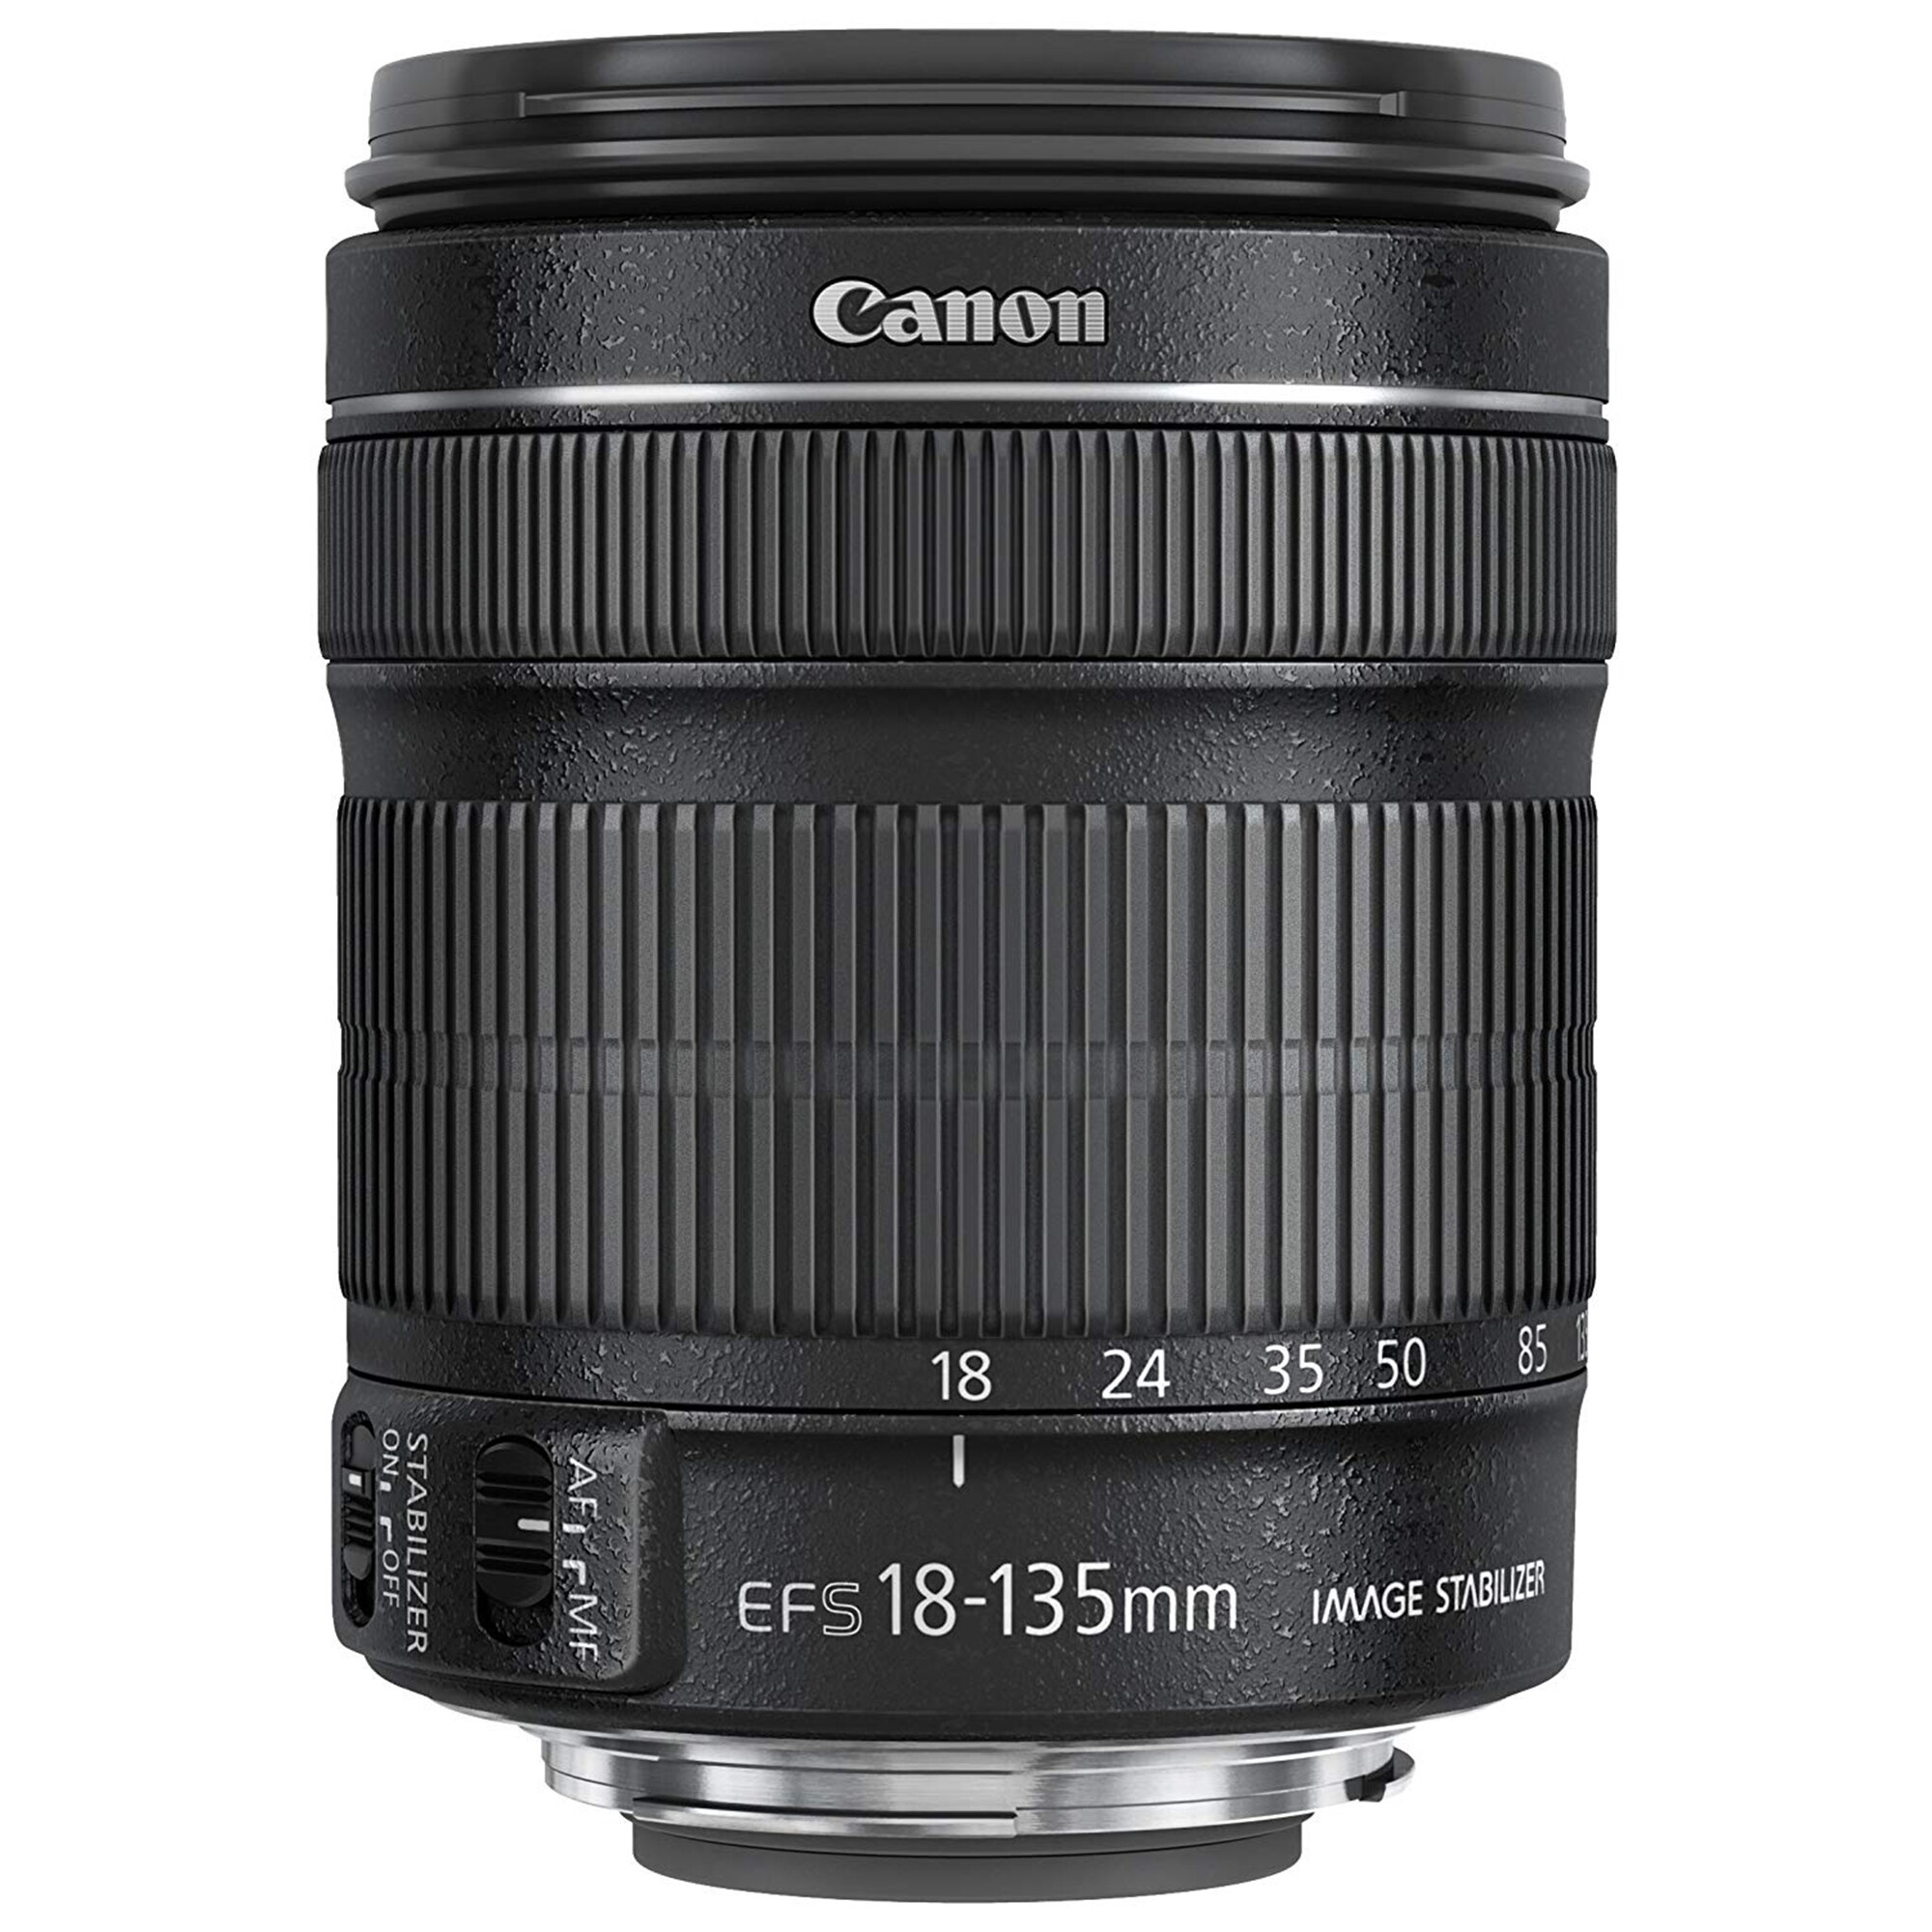 Canon EF-S IS STM 18-135mm f/3,5-5,6 - DEMO EX